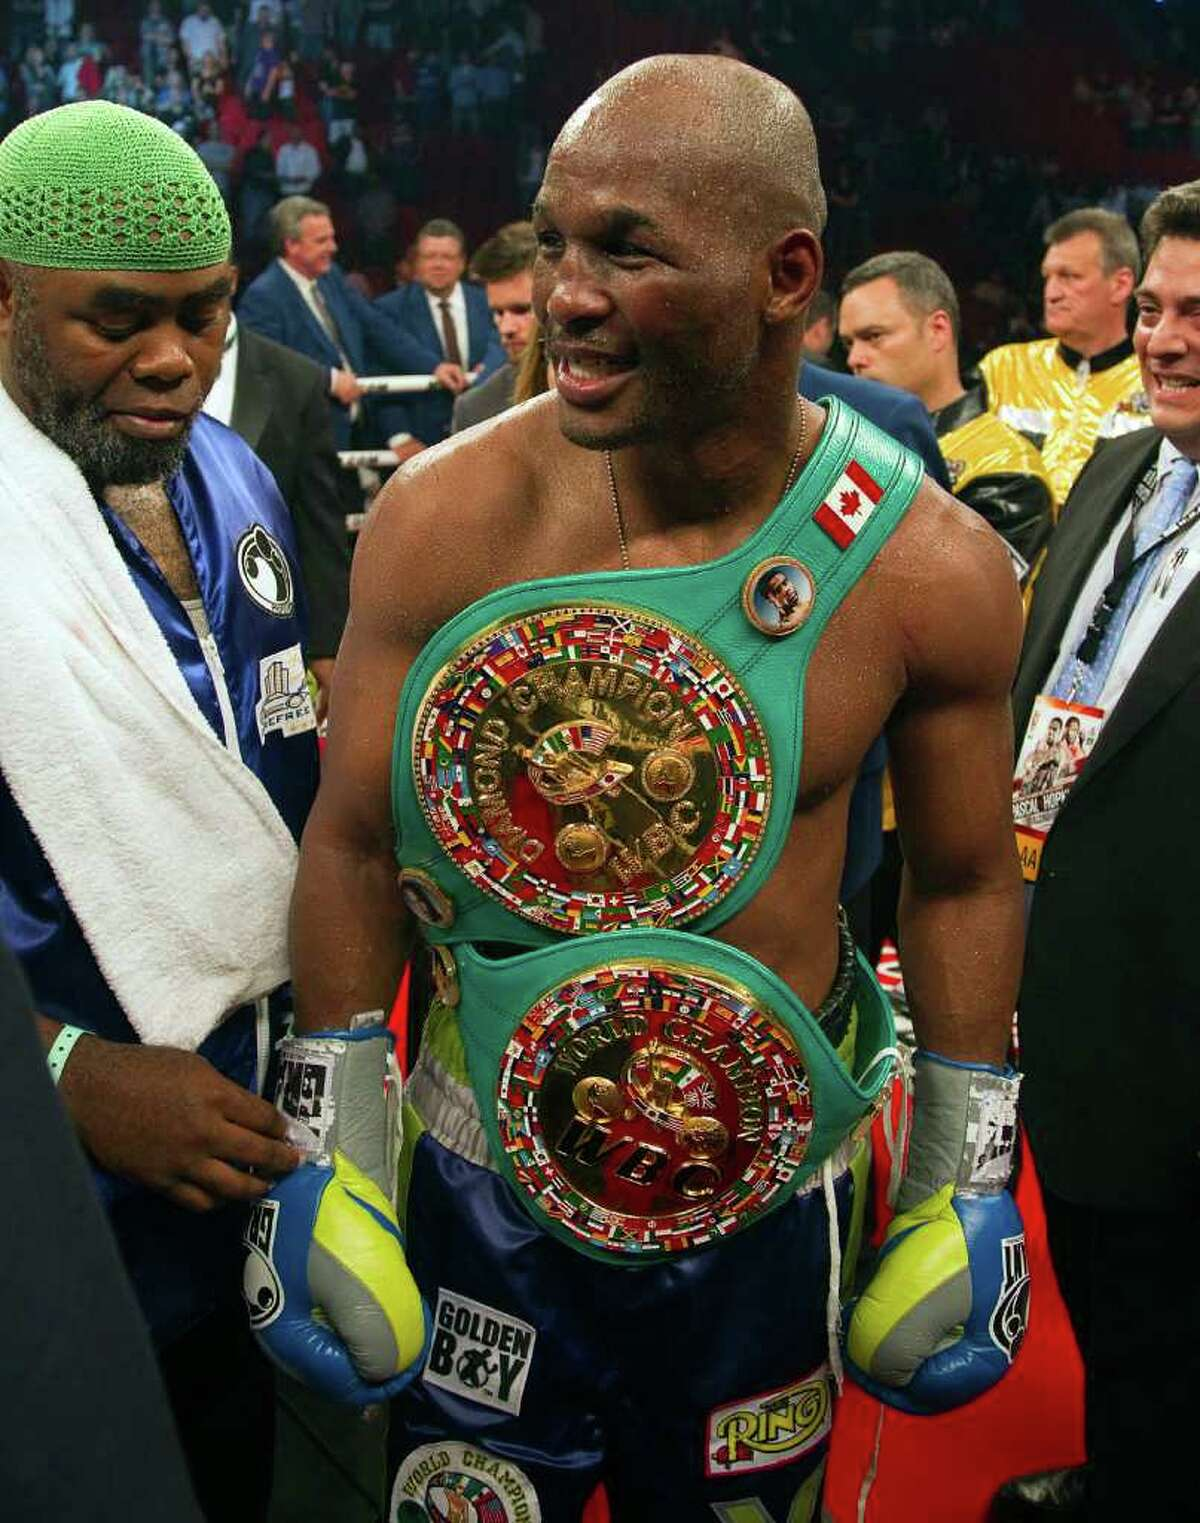 Bernard Hopkins, who recently became boxing's oldest champion at age 46, is already discussing the defense of his light heavyweight title in a potential bout in the fall.